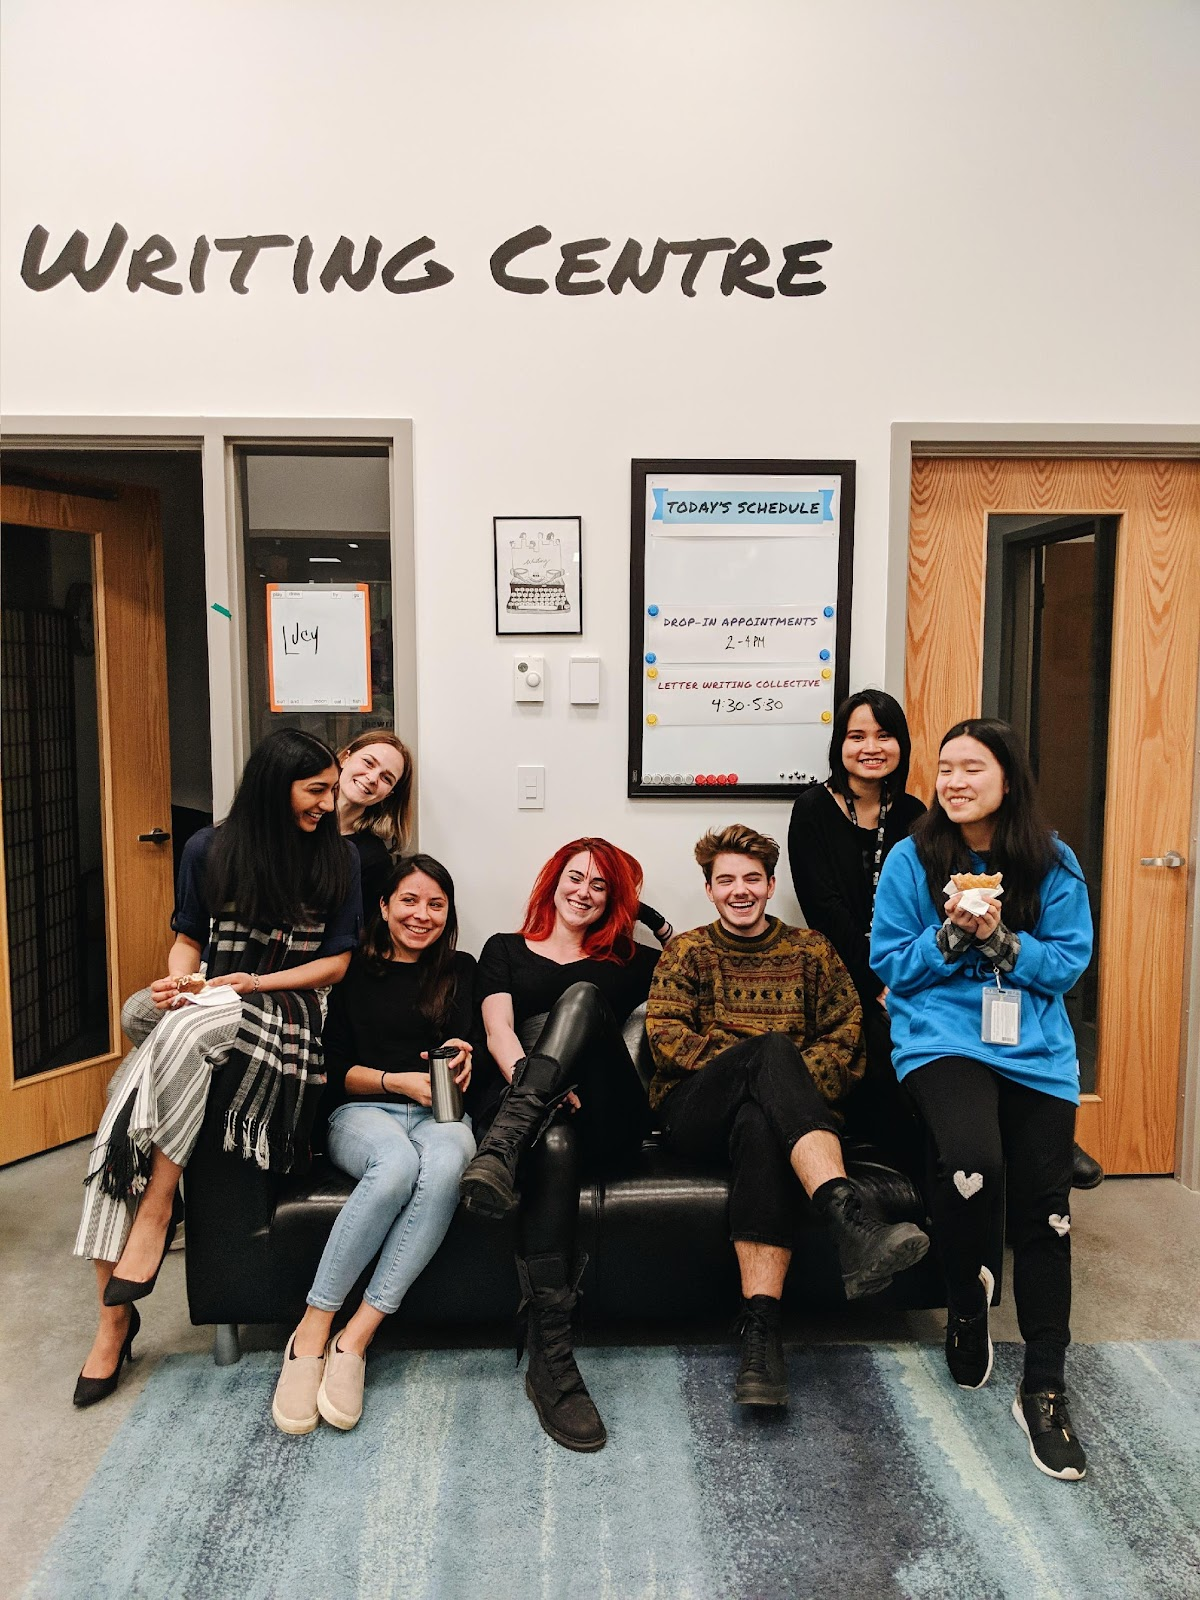 Image of people laughing on a couch in the Writing Centre